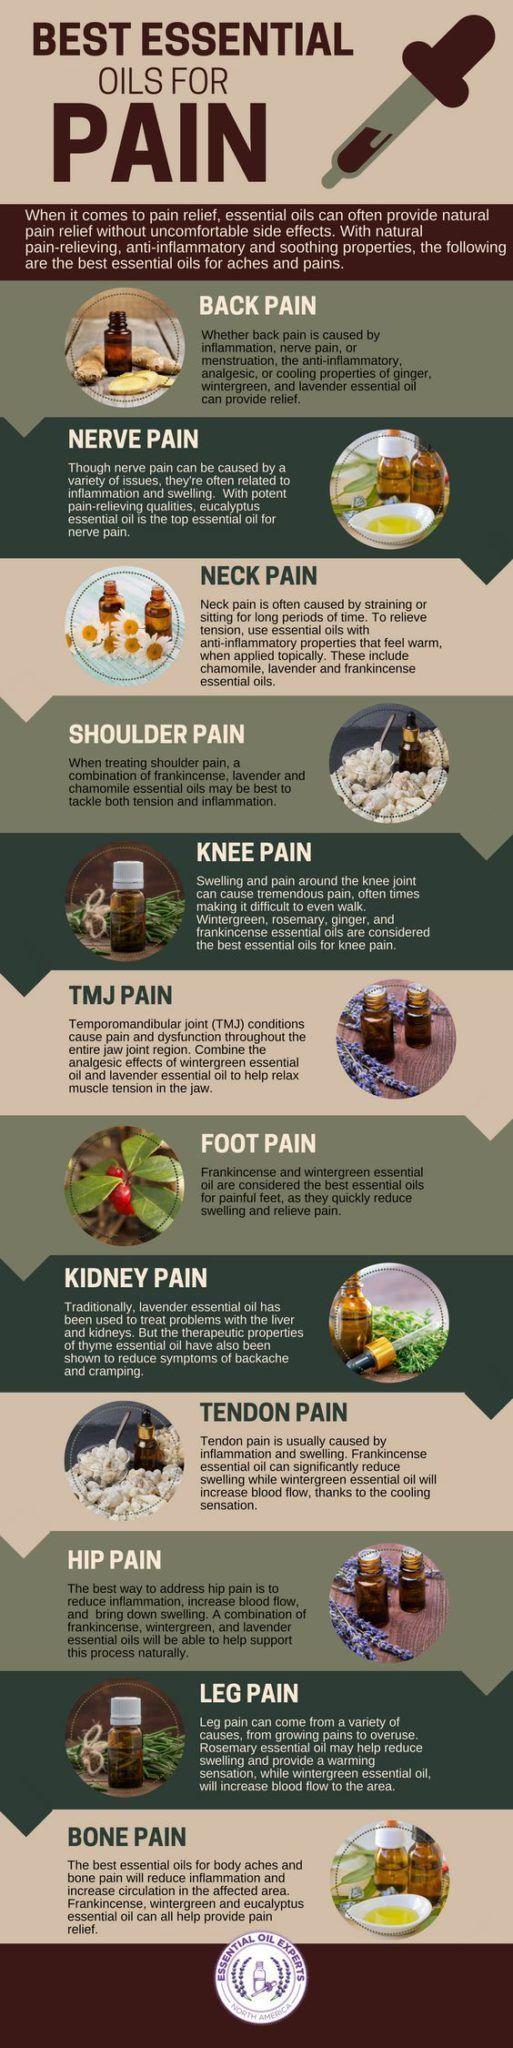 These essential oil hacks are AMAZING! I was looking everywhere for a great resource on essential oils for beginners and finally found it. From young living guides, diffusers, blends, recipes, remedies, and home hacks this article covers it all!